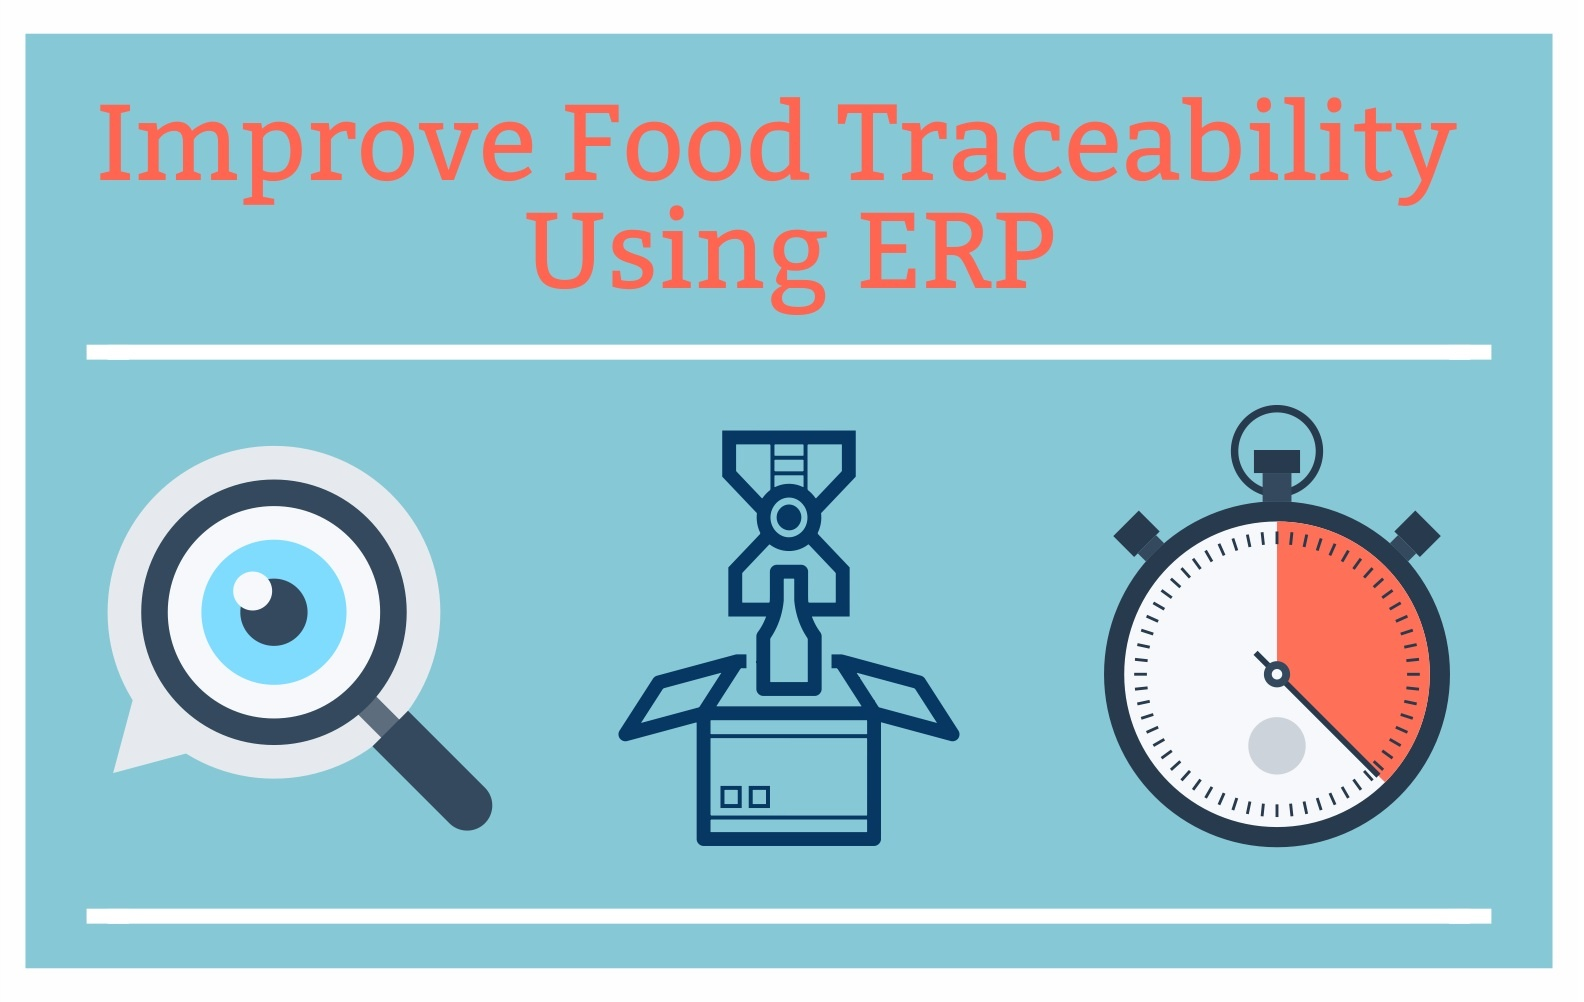 Improve Food Traceability Using ERP